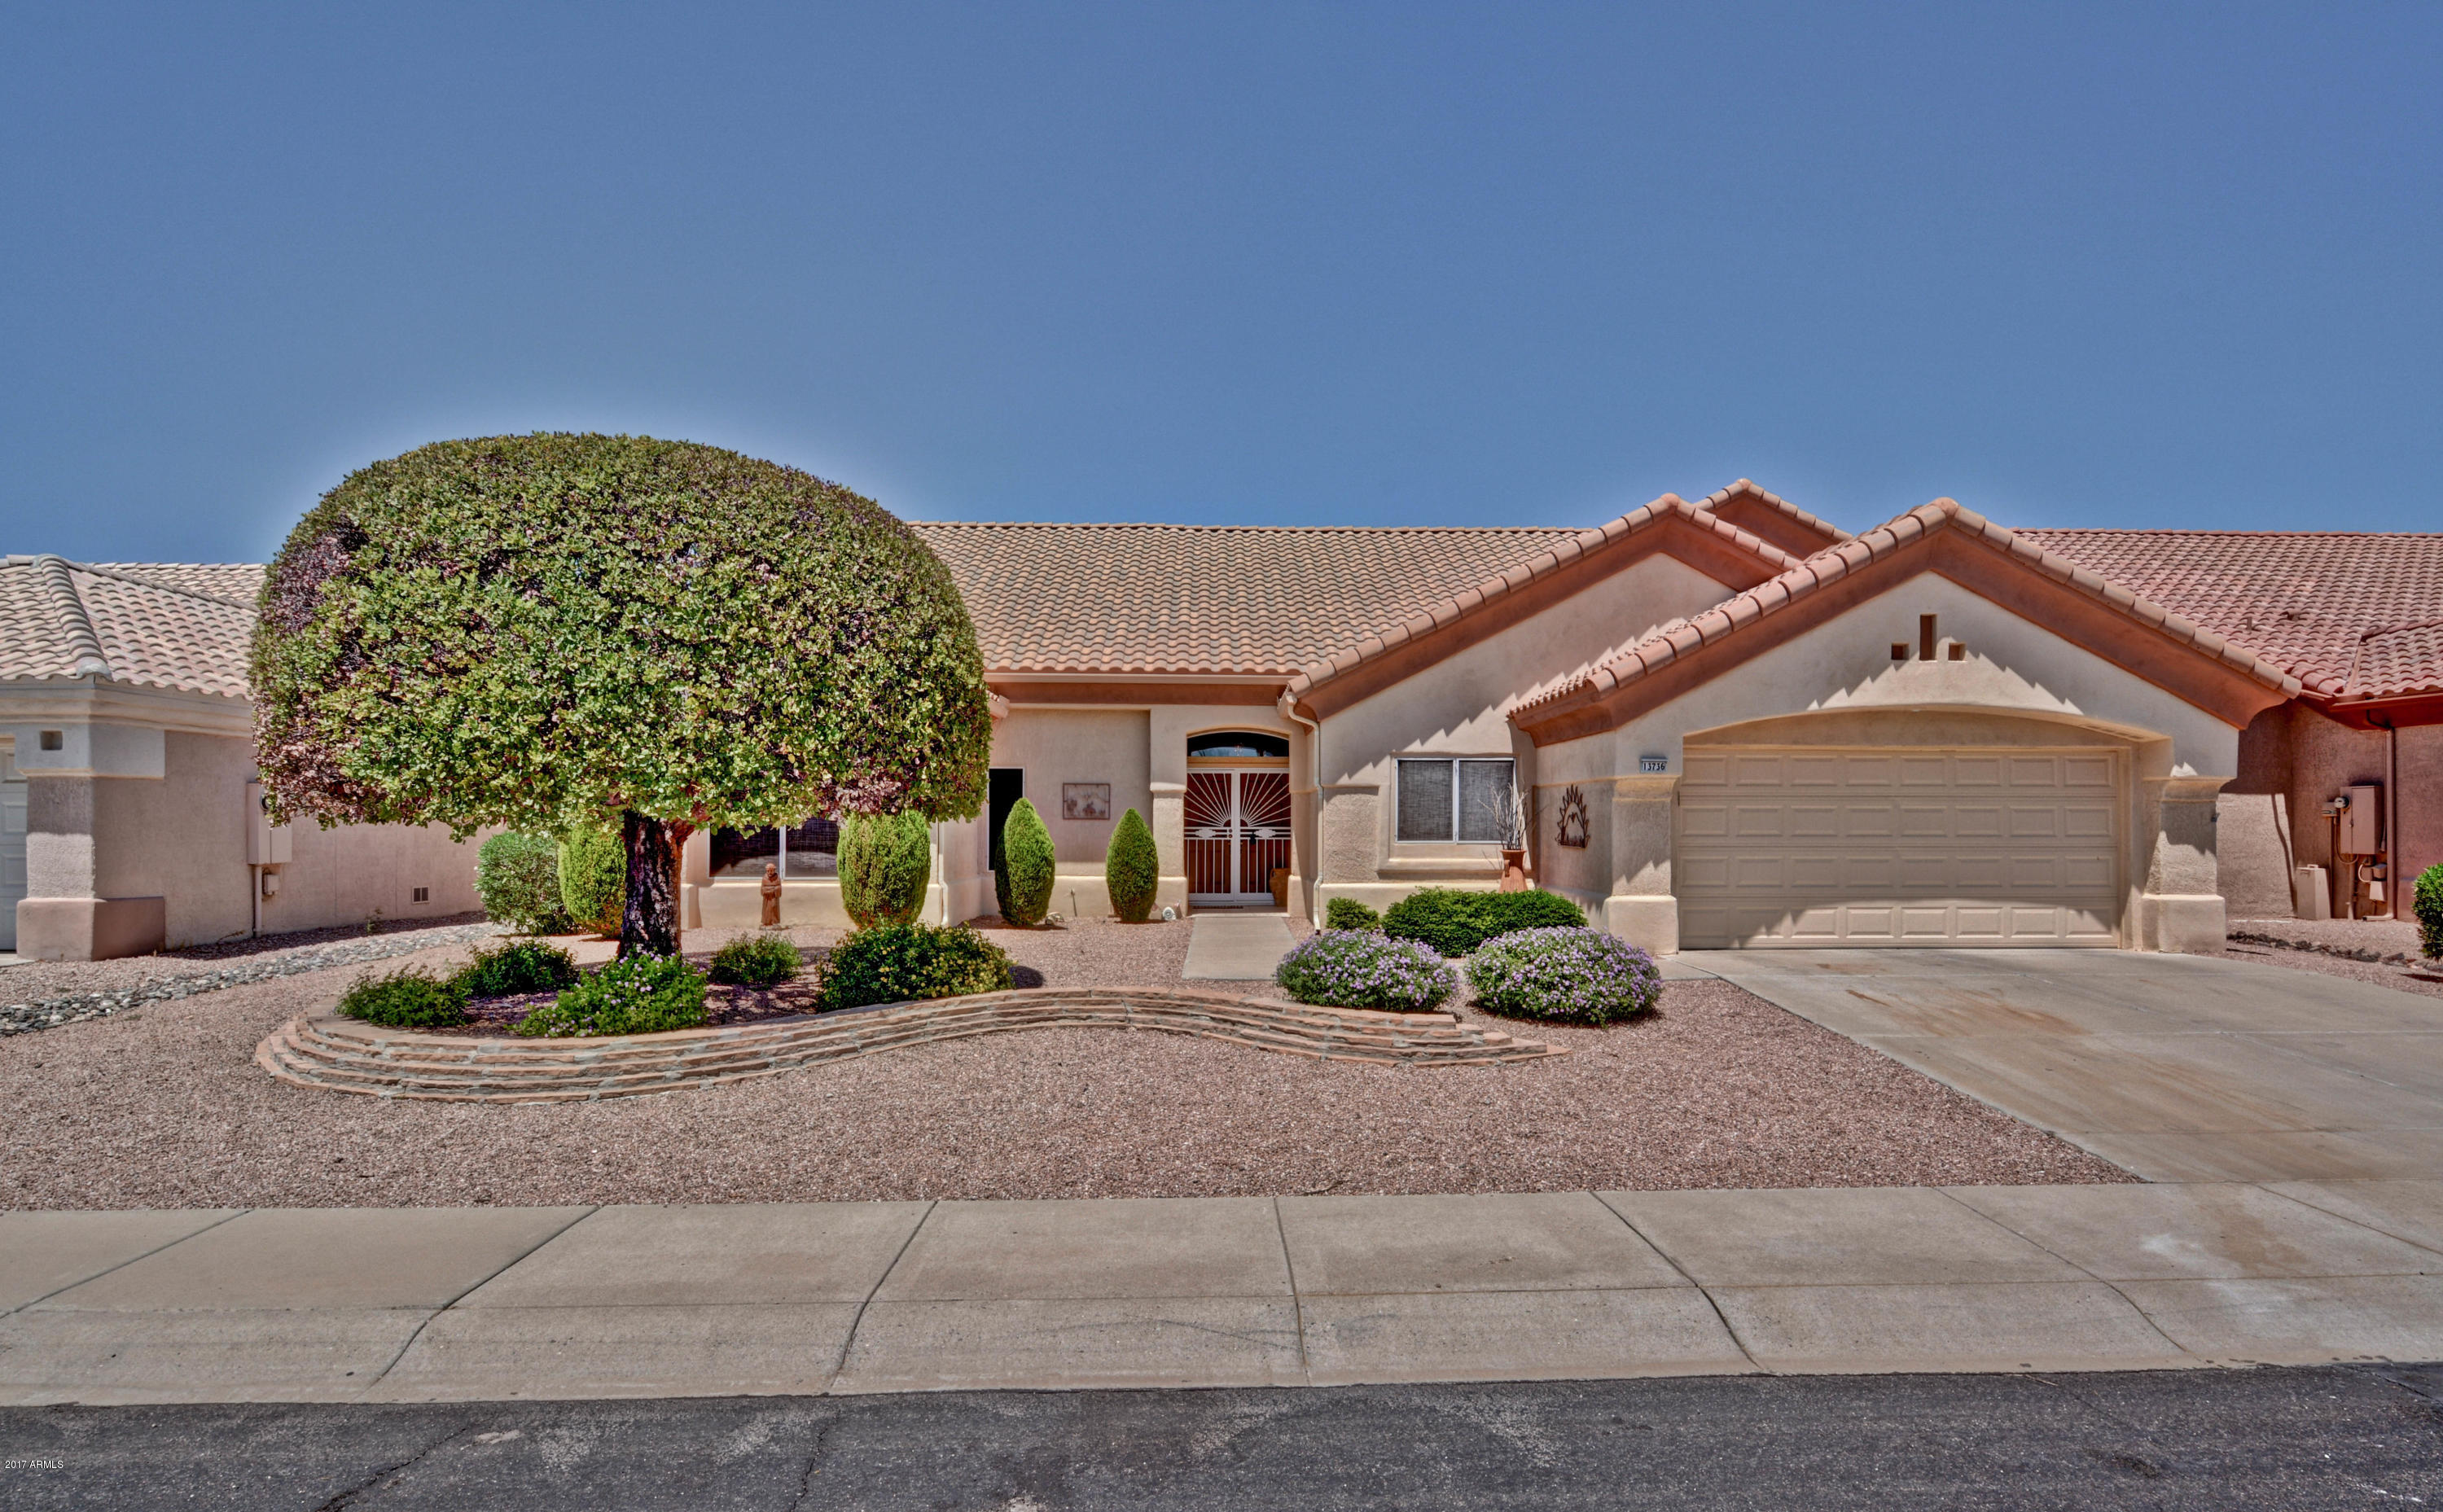 13736 W GUNSIGHT DRIVE, SUN CITY WEST, AZ 85375